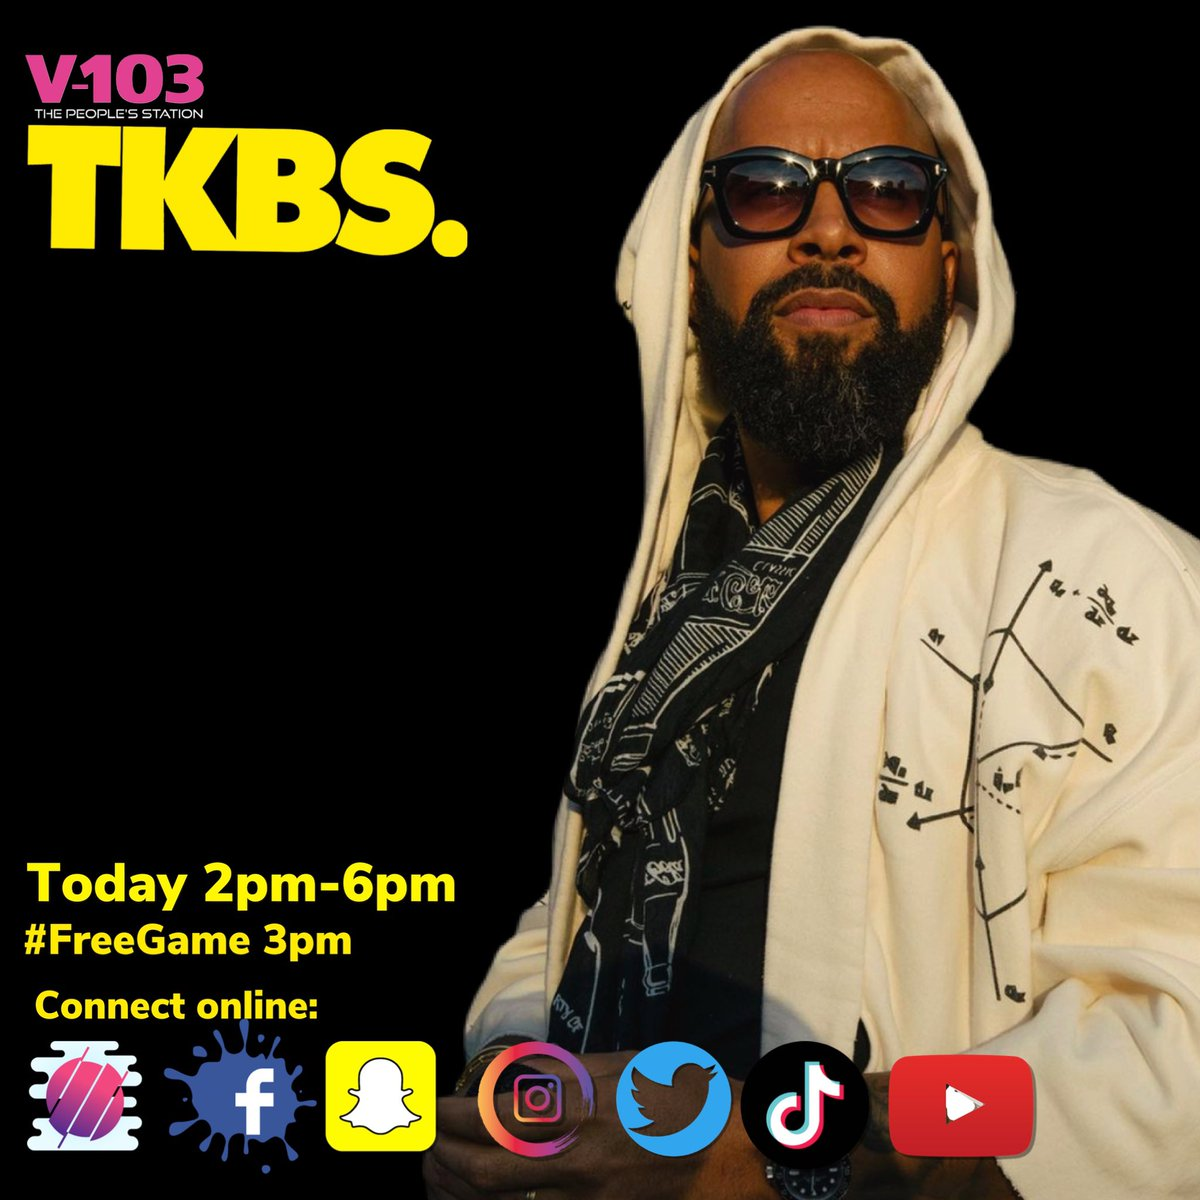 #tkbsnation it's time to tune into the HOTTEST show on radio, #TheKennyBurnsShow on @v103atlanta!  Tap in NOW for the latest in celebrity news, interviews and more!   Want some #FreeGame join the conversation at 3pm EST to ask YOUR questions to the #LifestyleSpecialist!  #TKBS